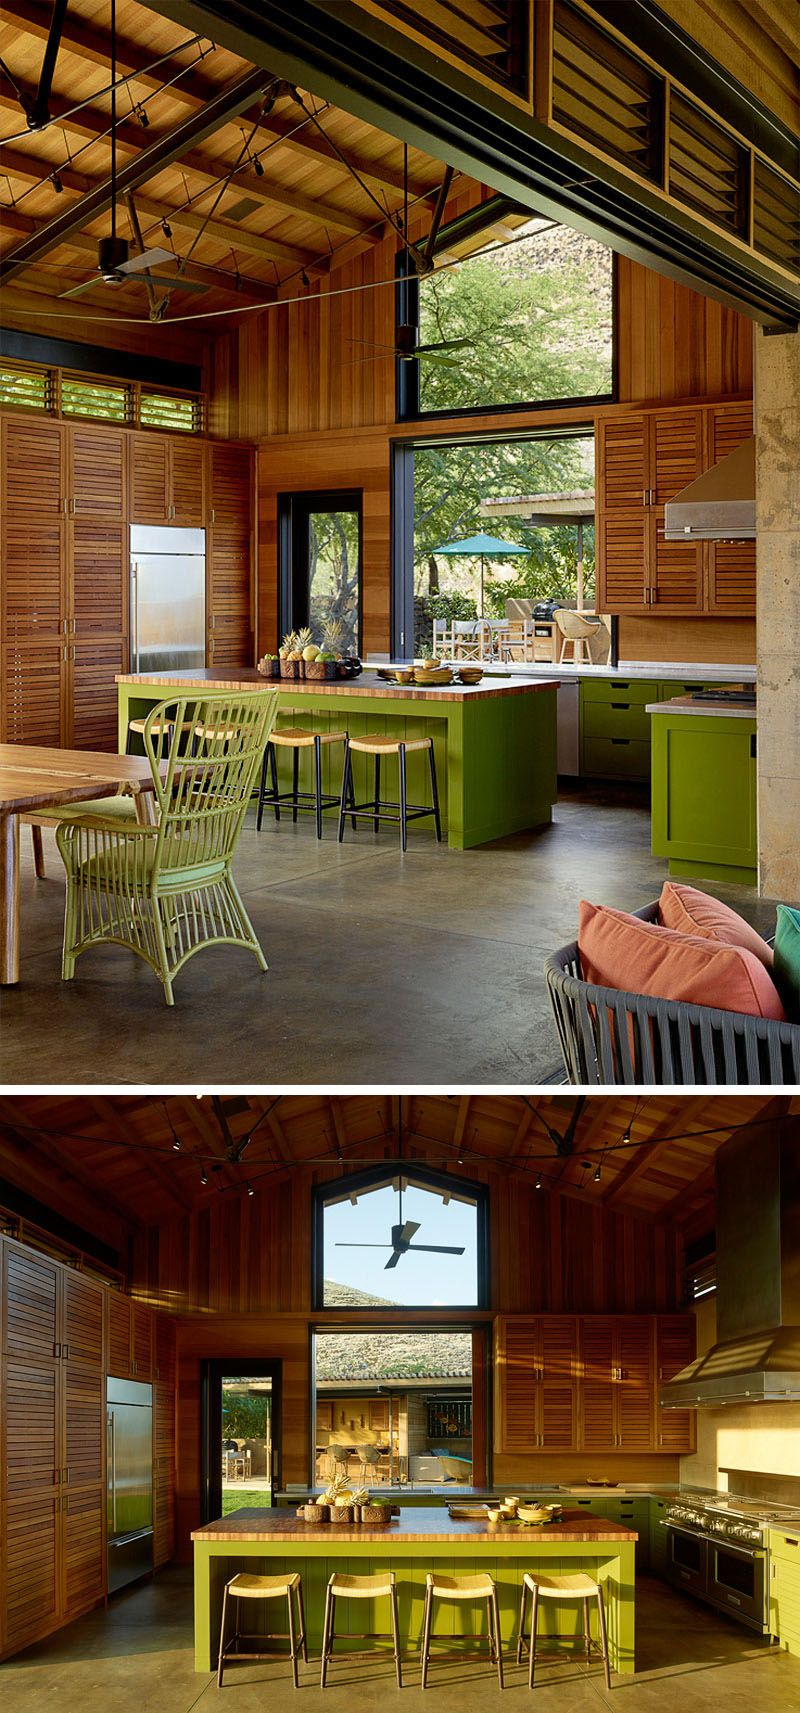 In this contemporary kitchen green cabinets add a pop of color while large windows provide ample natural light and let views of the other nearby gathering